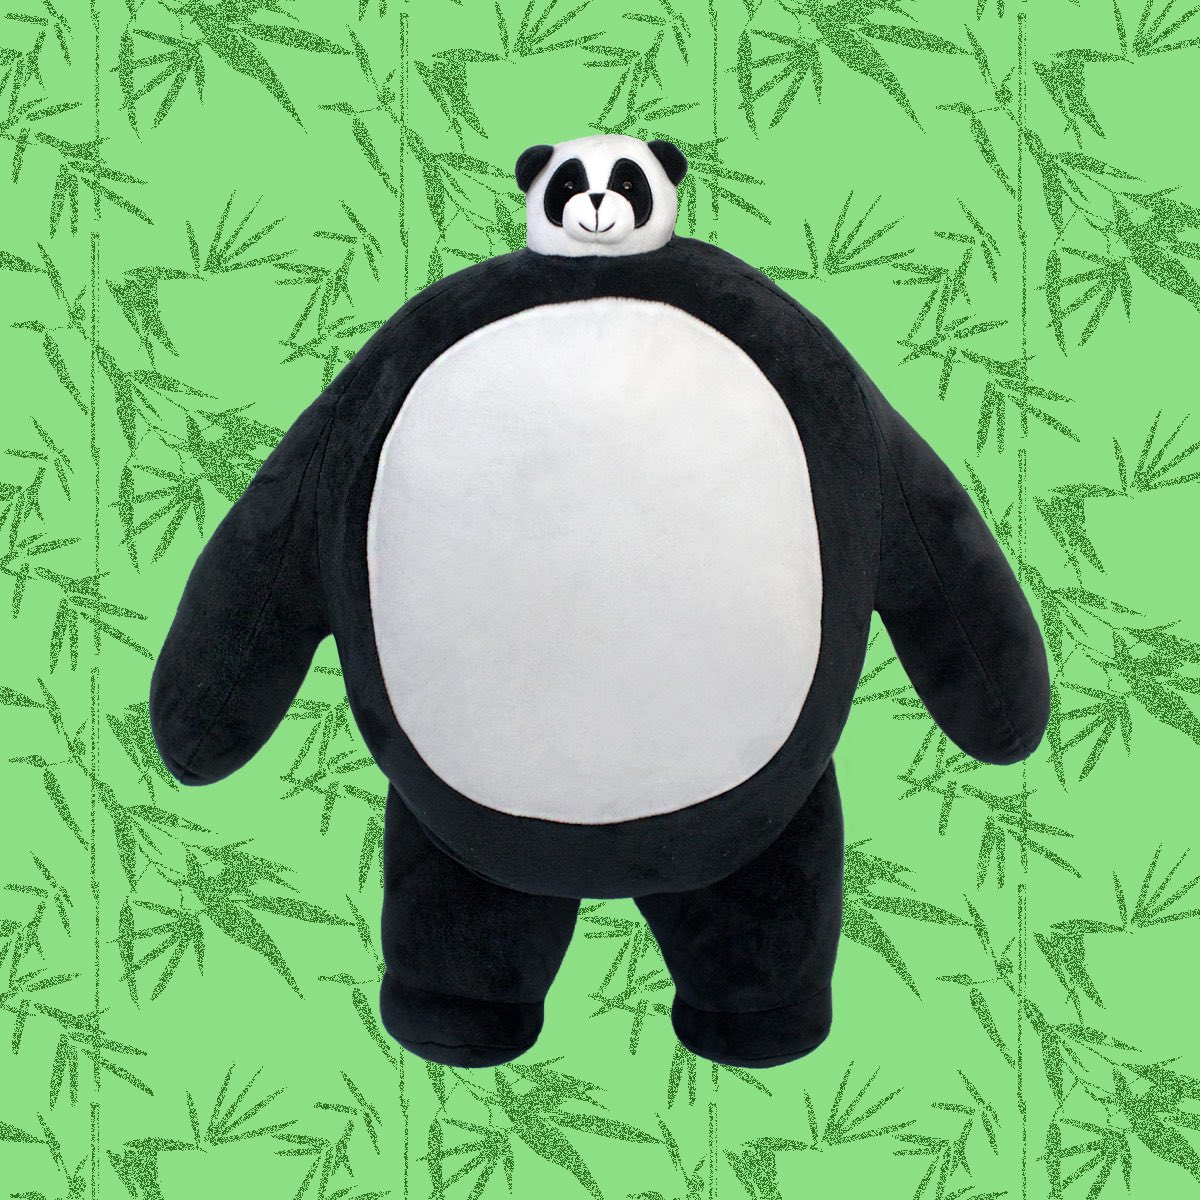 Attn: THK Family...Boz the Panda has arrived and is now ready to come home with you! No need to run, just be calm. Like Boz. Calm as a panda, as they say. Head to our website and get this party started (limit 2 per customer!) ❤️🐼 #BozThePanda #tinyheadsbighearts #plush #toys